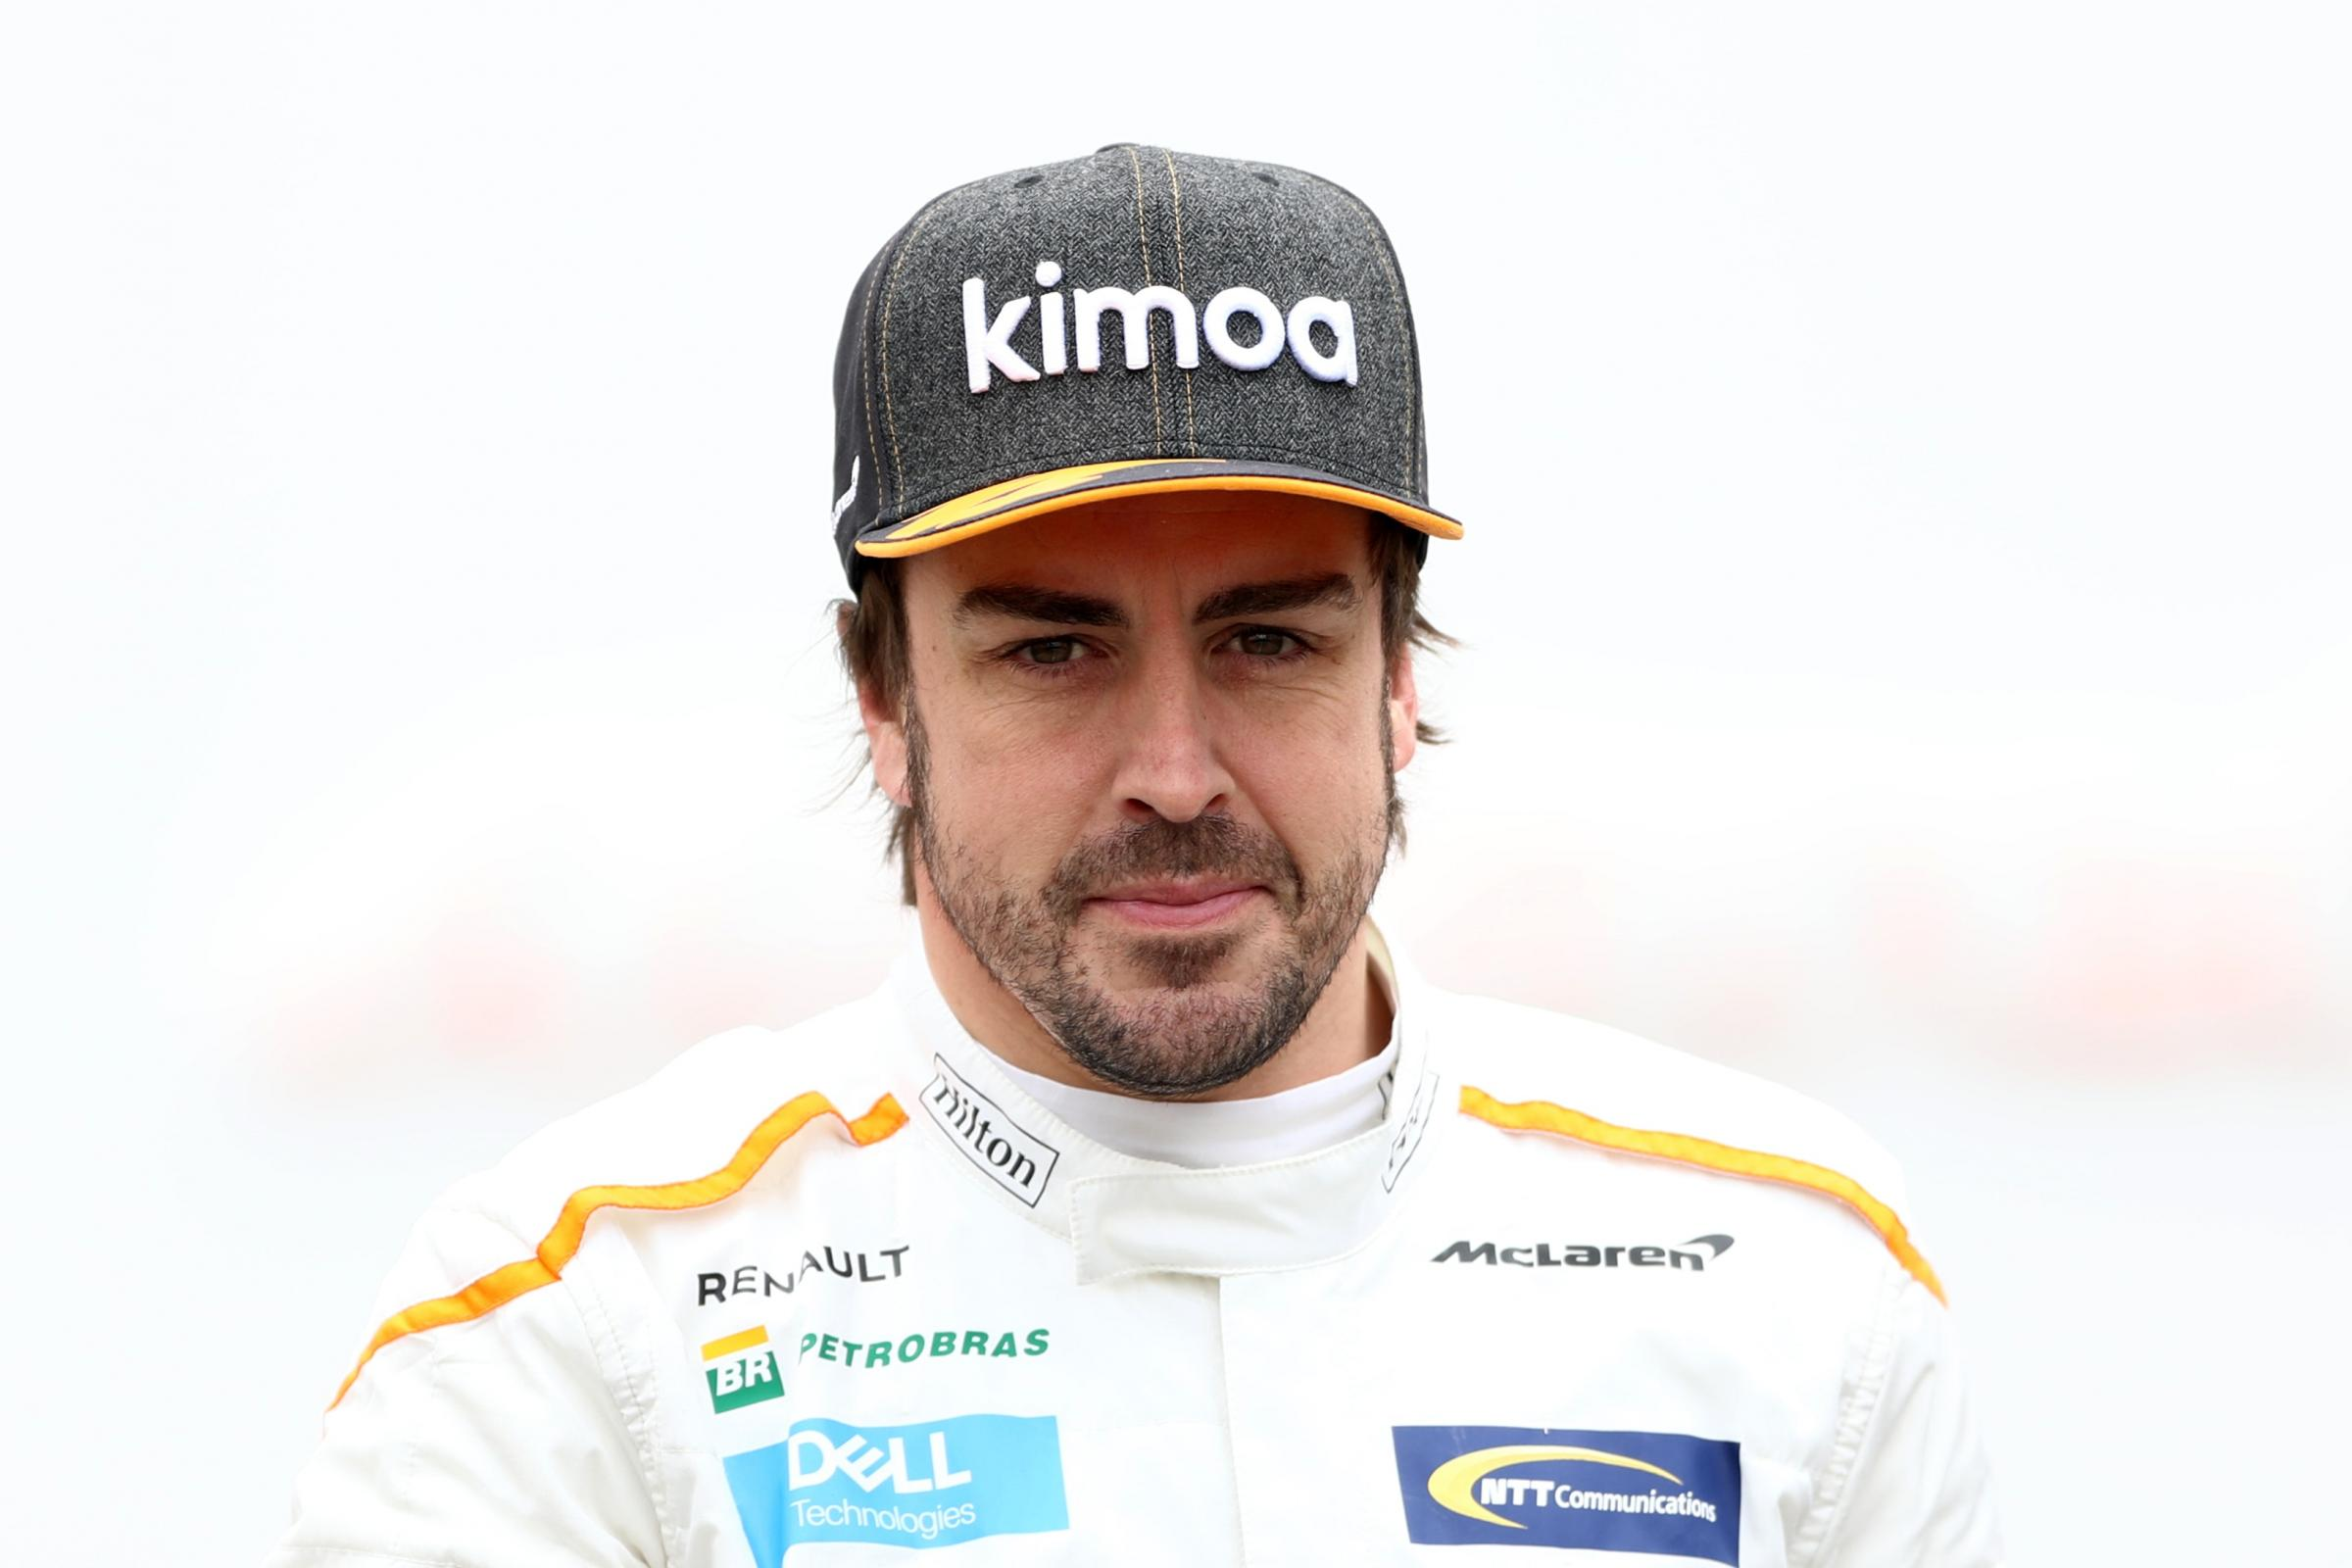 'I think it's hard to beat me' - Fernando Alonso